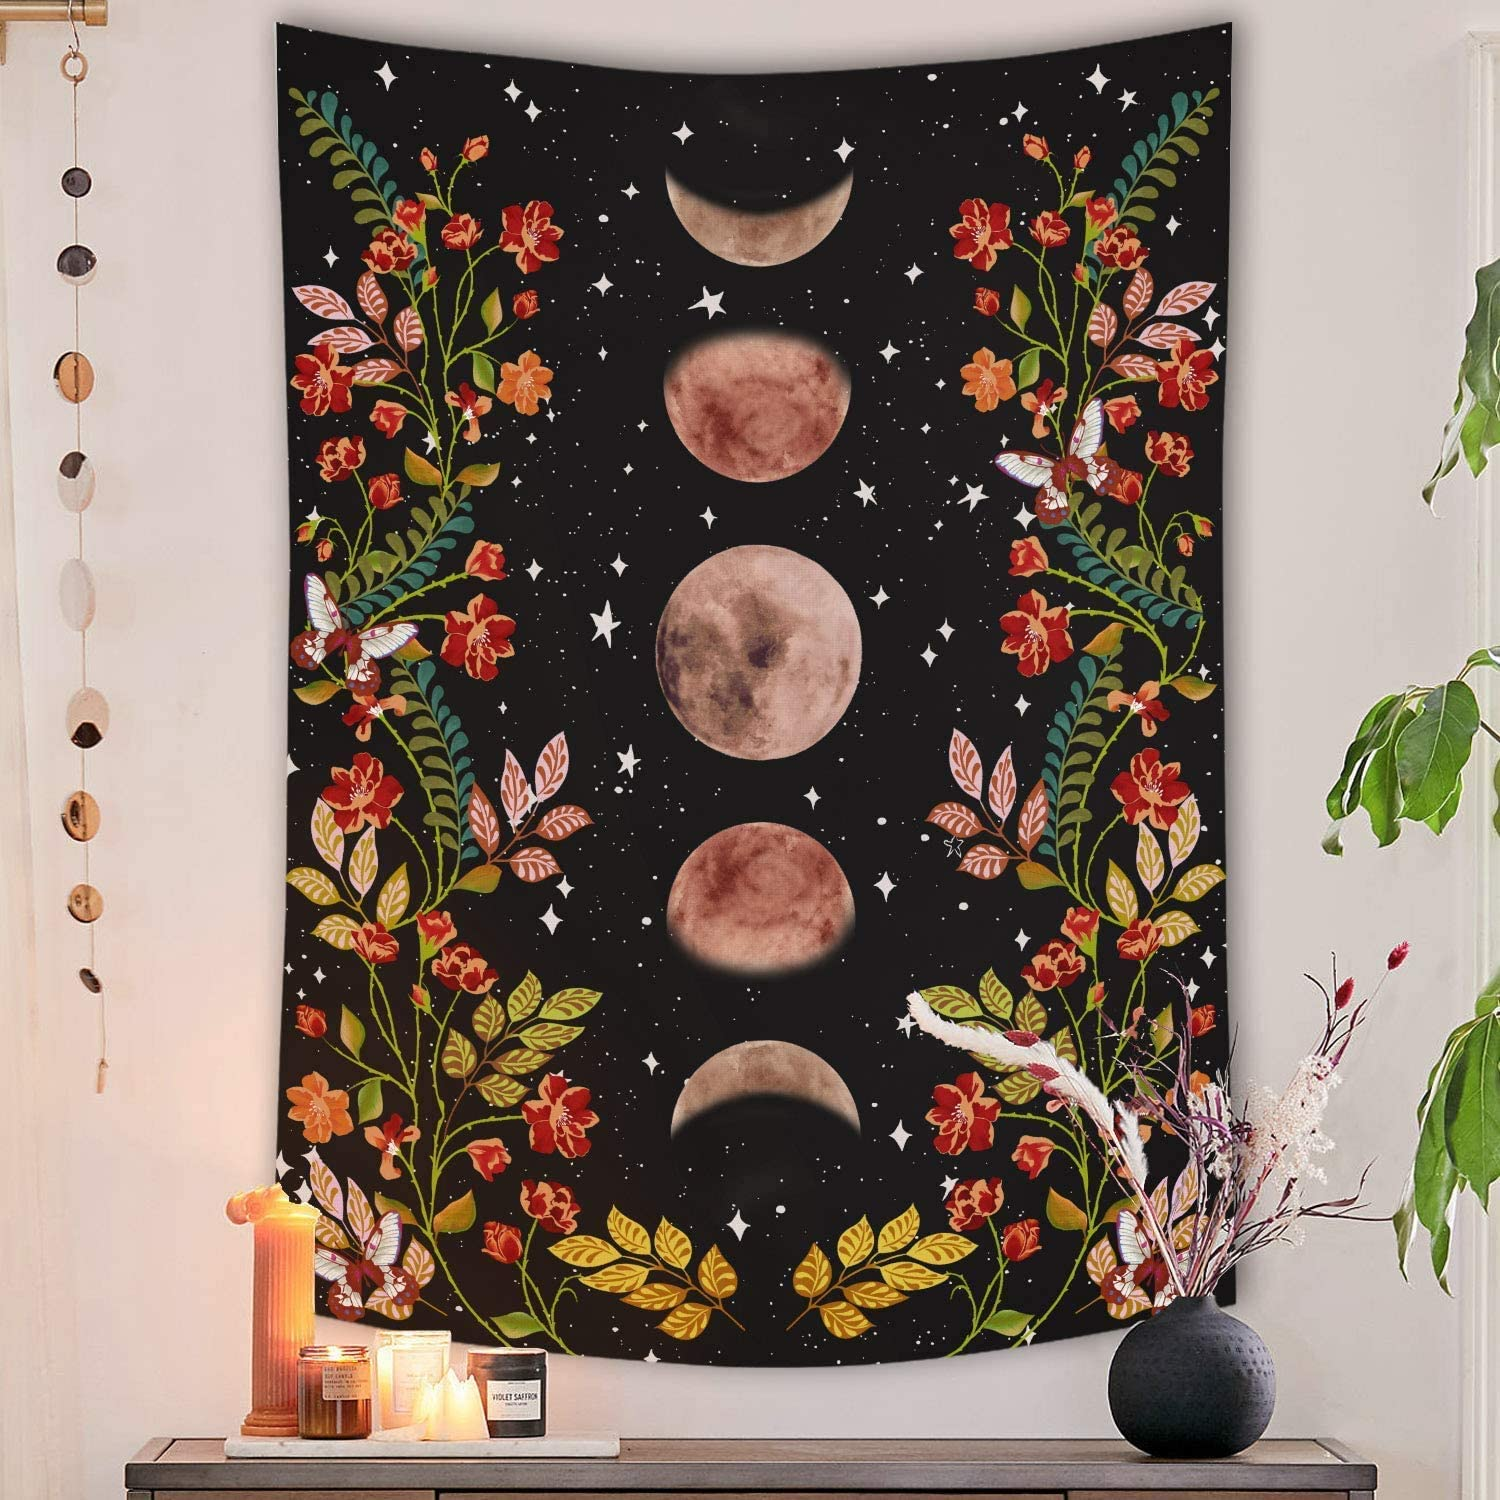 Moonlit Garden Tapestry Wall Hanging 50x60 inch Moon Phase Surrounded by Vines and Flowers Tapestries Black Background Flower Tapestry Poster Wall Decor for Dorm Bedroom Living Room by GREENPURE